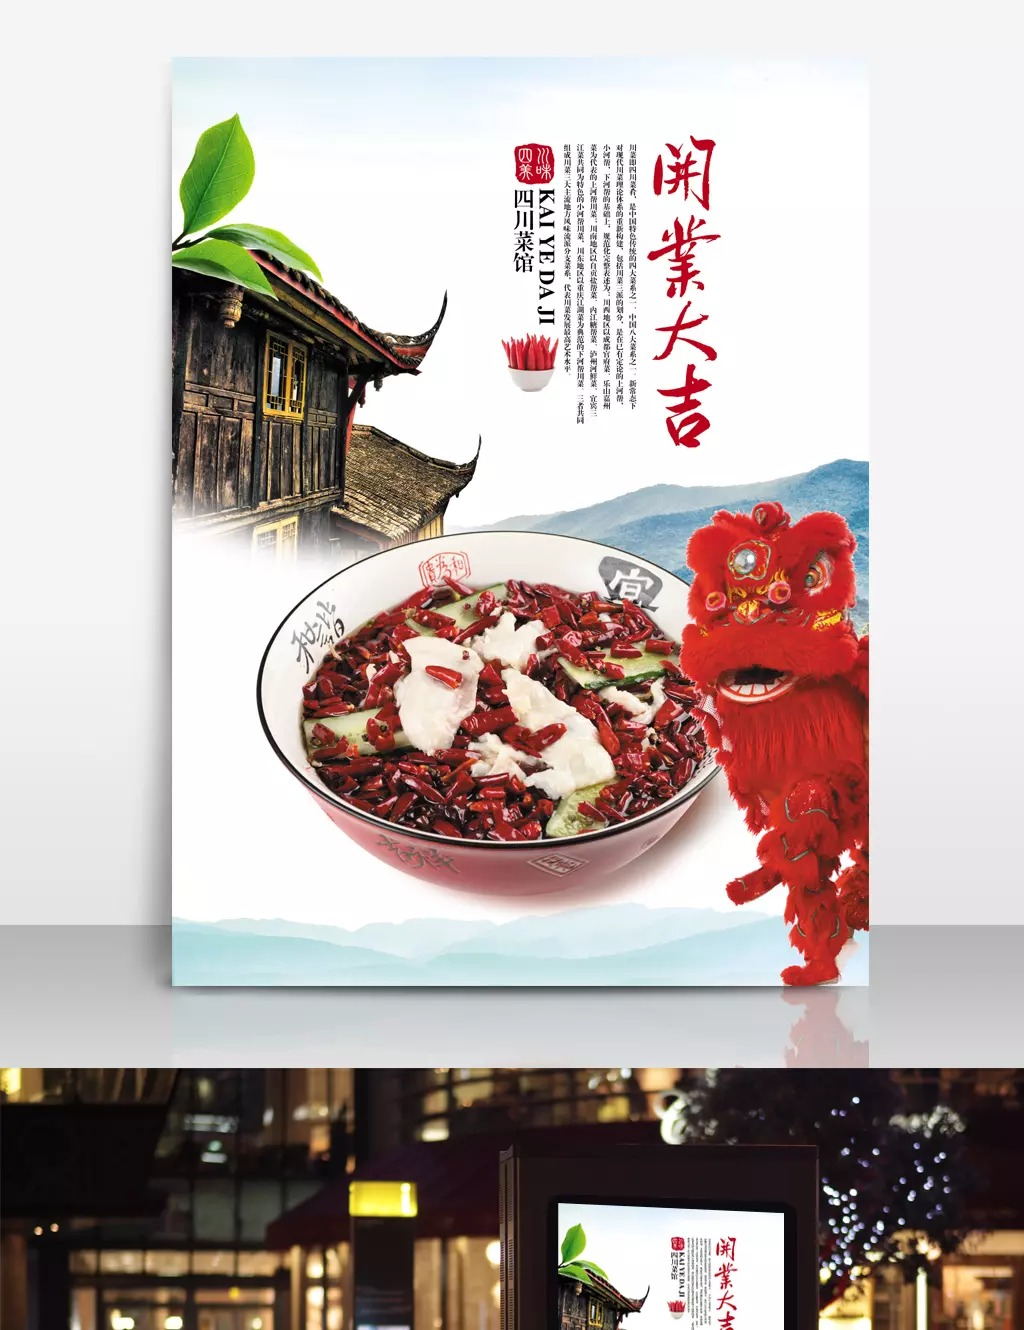 Restaurant Opening Poster Design Live Fish Sichuan Cuisine Chili Spicy Template Download On Pngtree